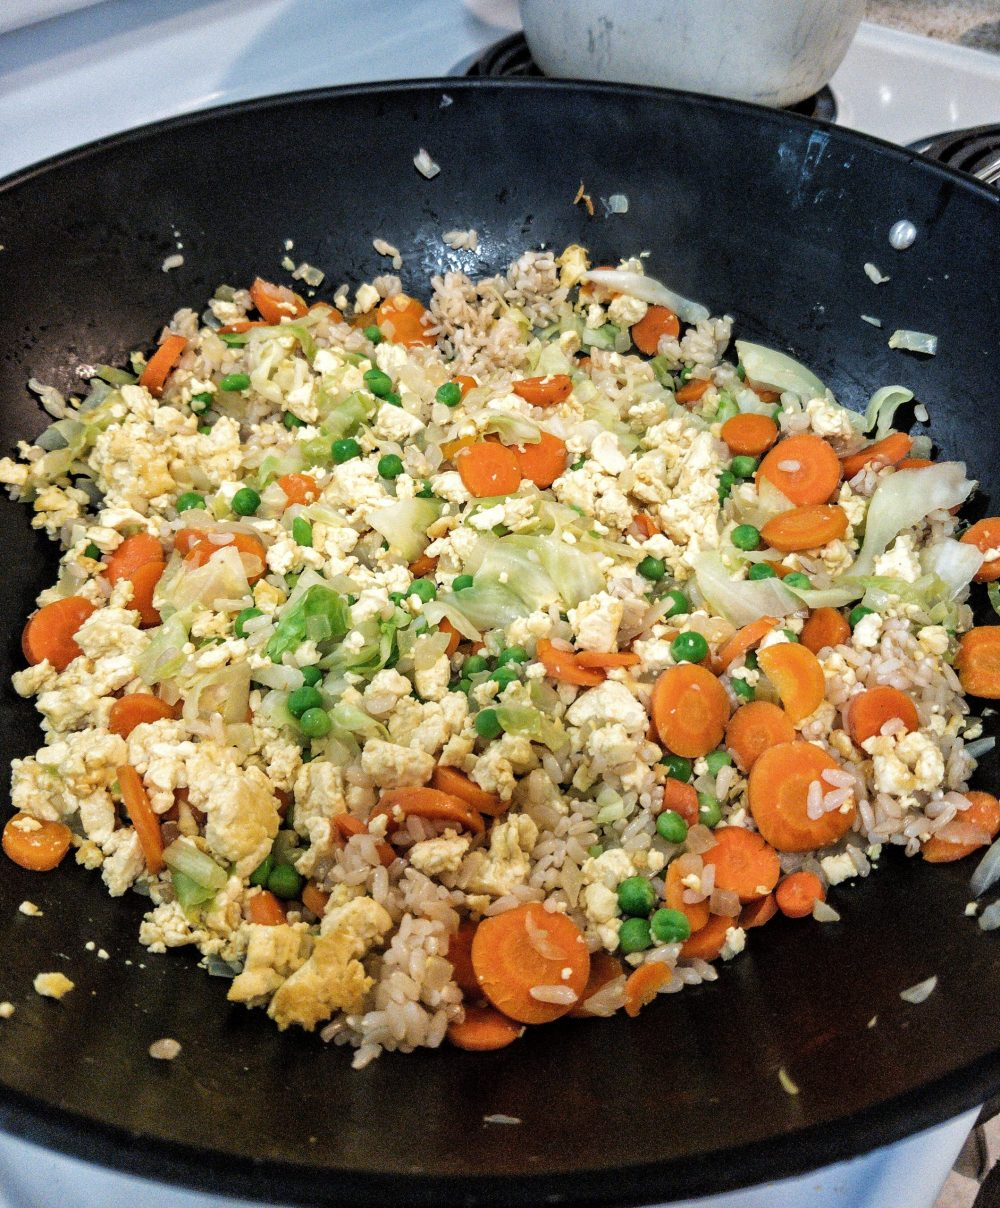 Oil-free, vegan fried rice in a non-stick wok